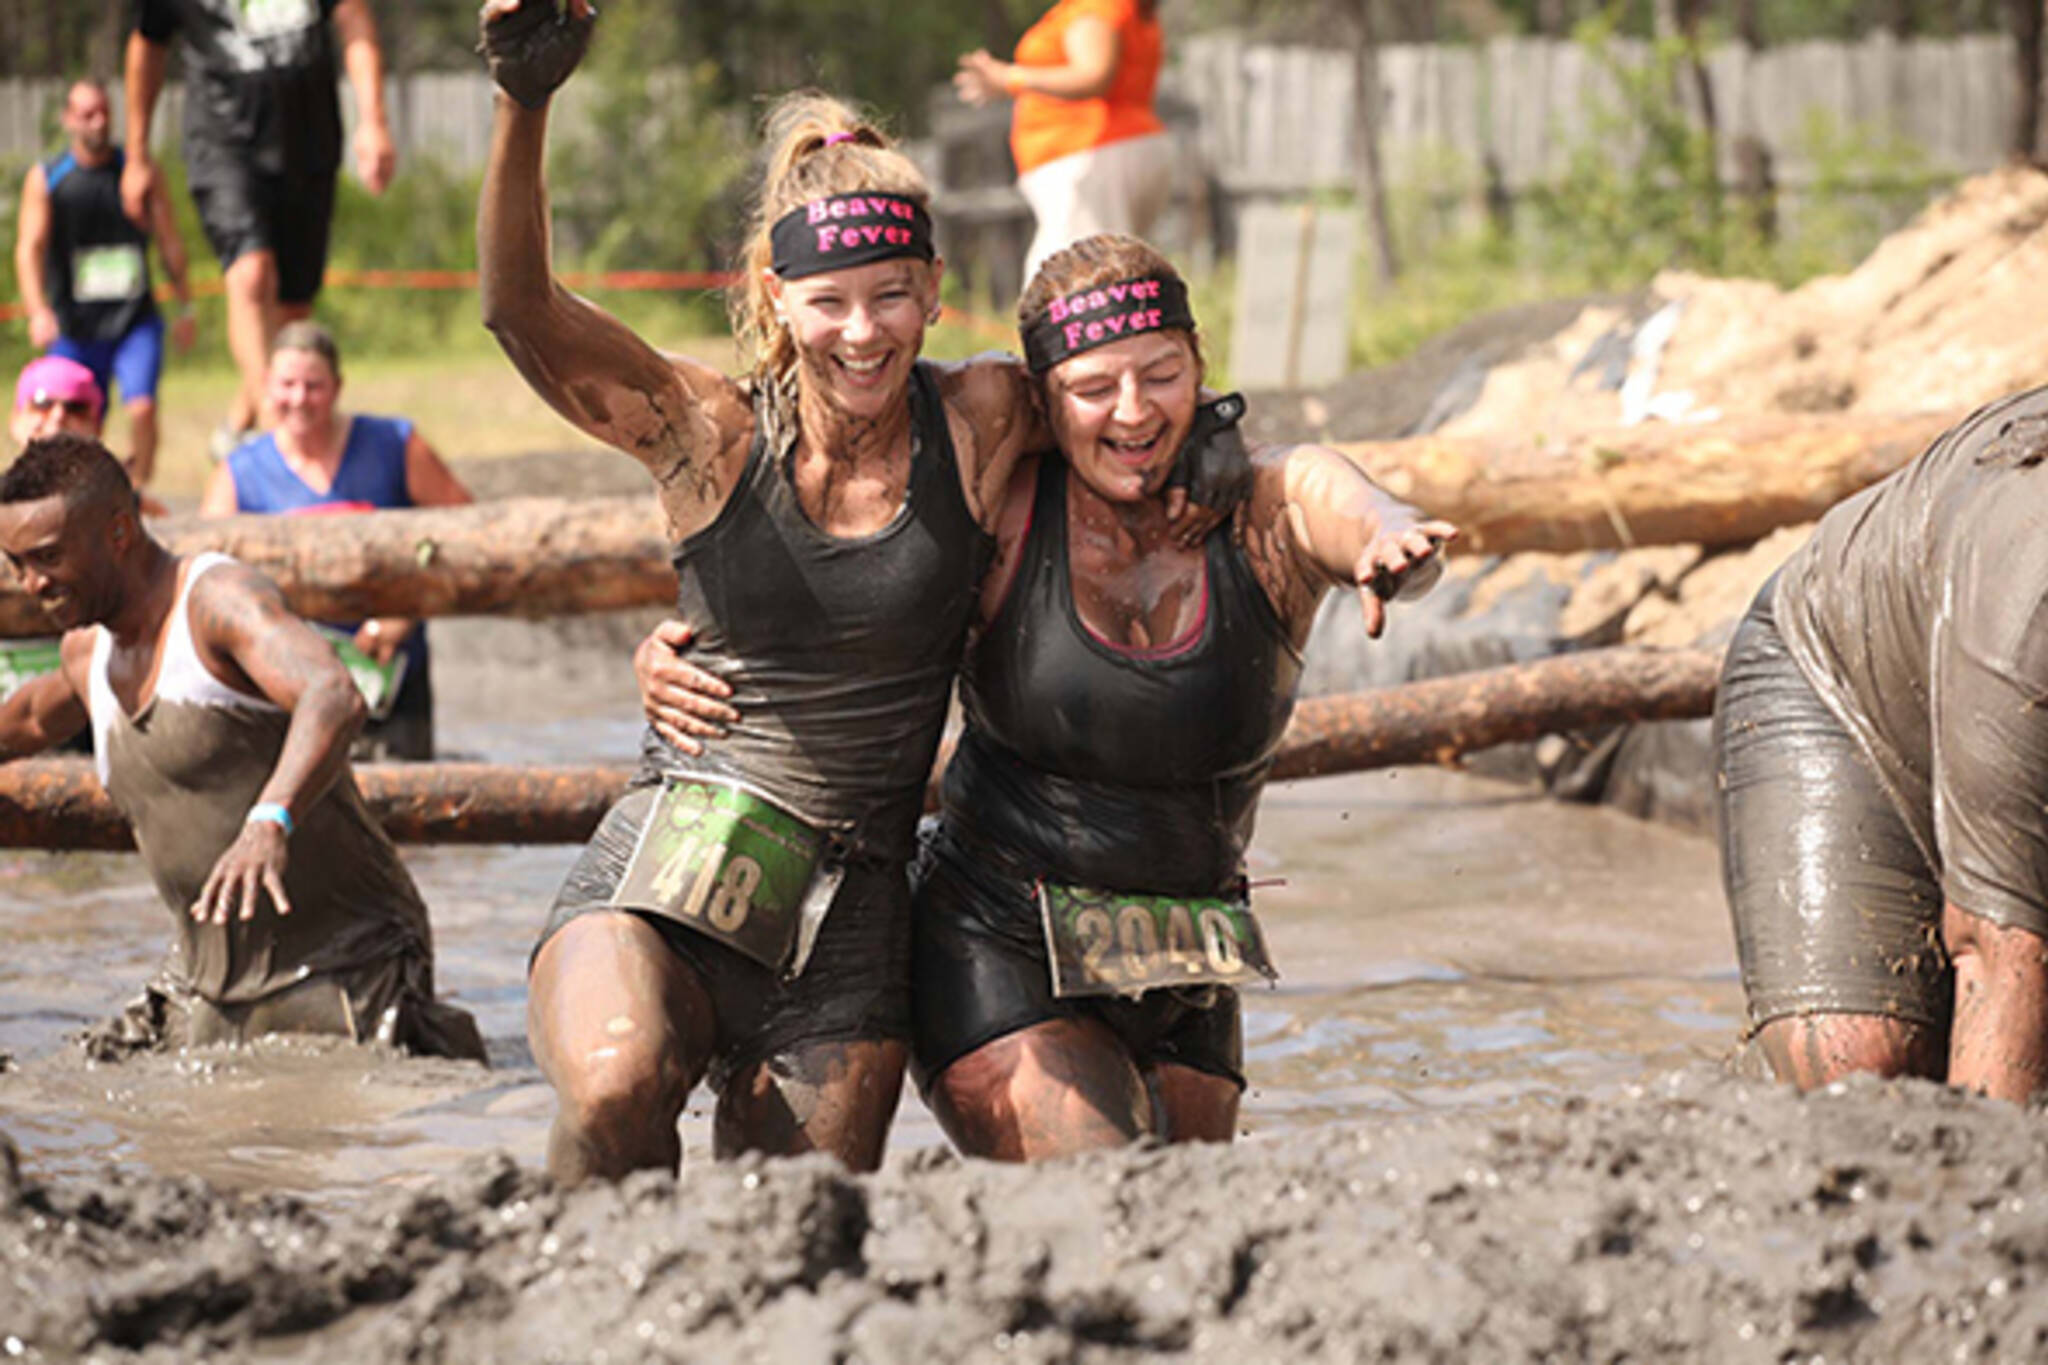 Massive Mud Race Coming To Ontario Place This Spring